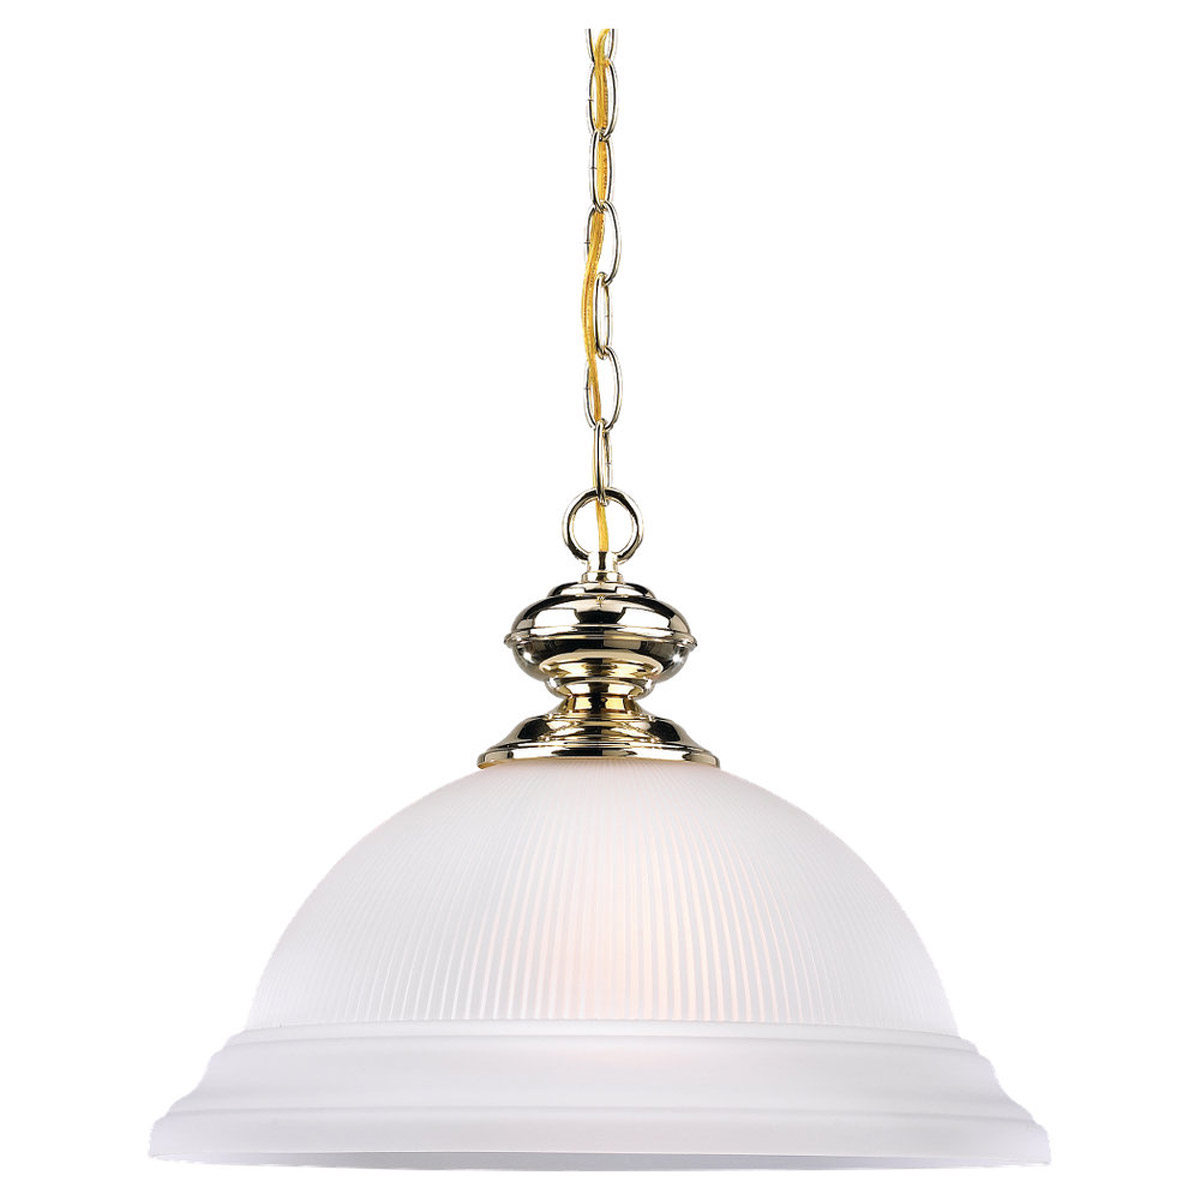 Sea Gull Lighting Mullica Hill 1 Light Pendant in Polished Brass 6640-02 photo